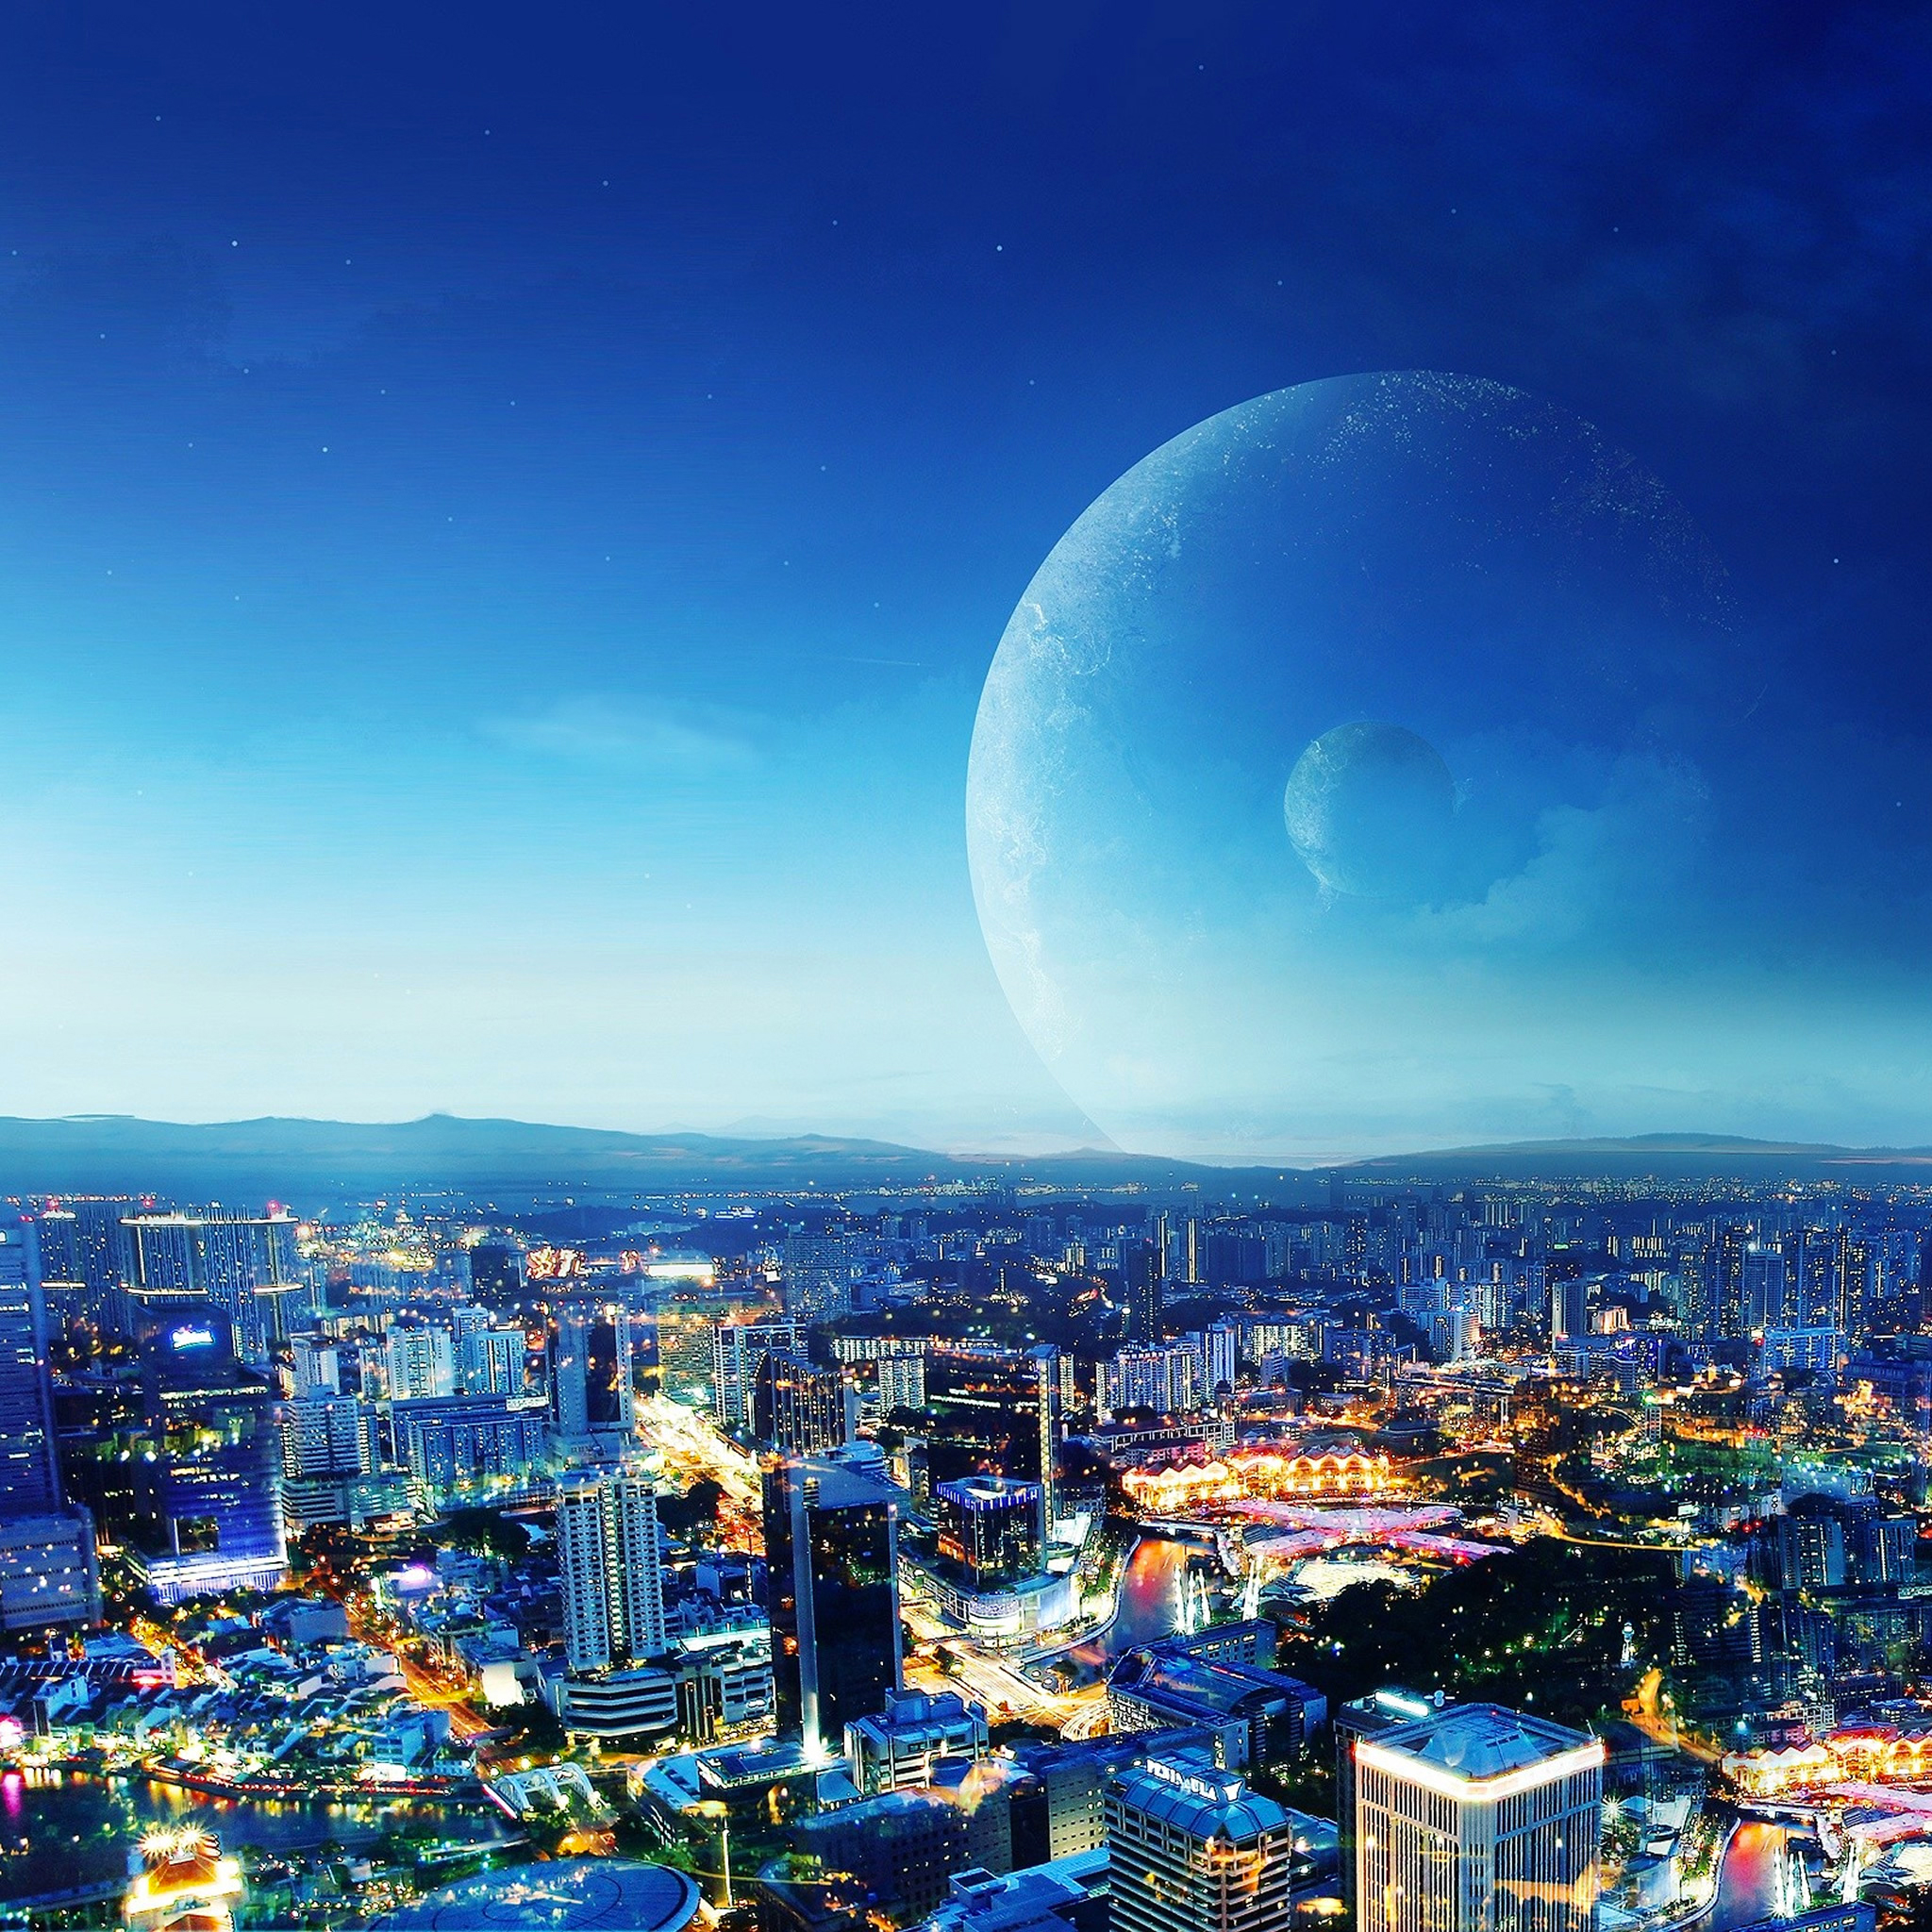 Cityscapes Planets 3Wallpapers iPad Retina Cityscapes Planets   iPad Retina